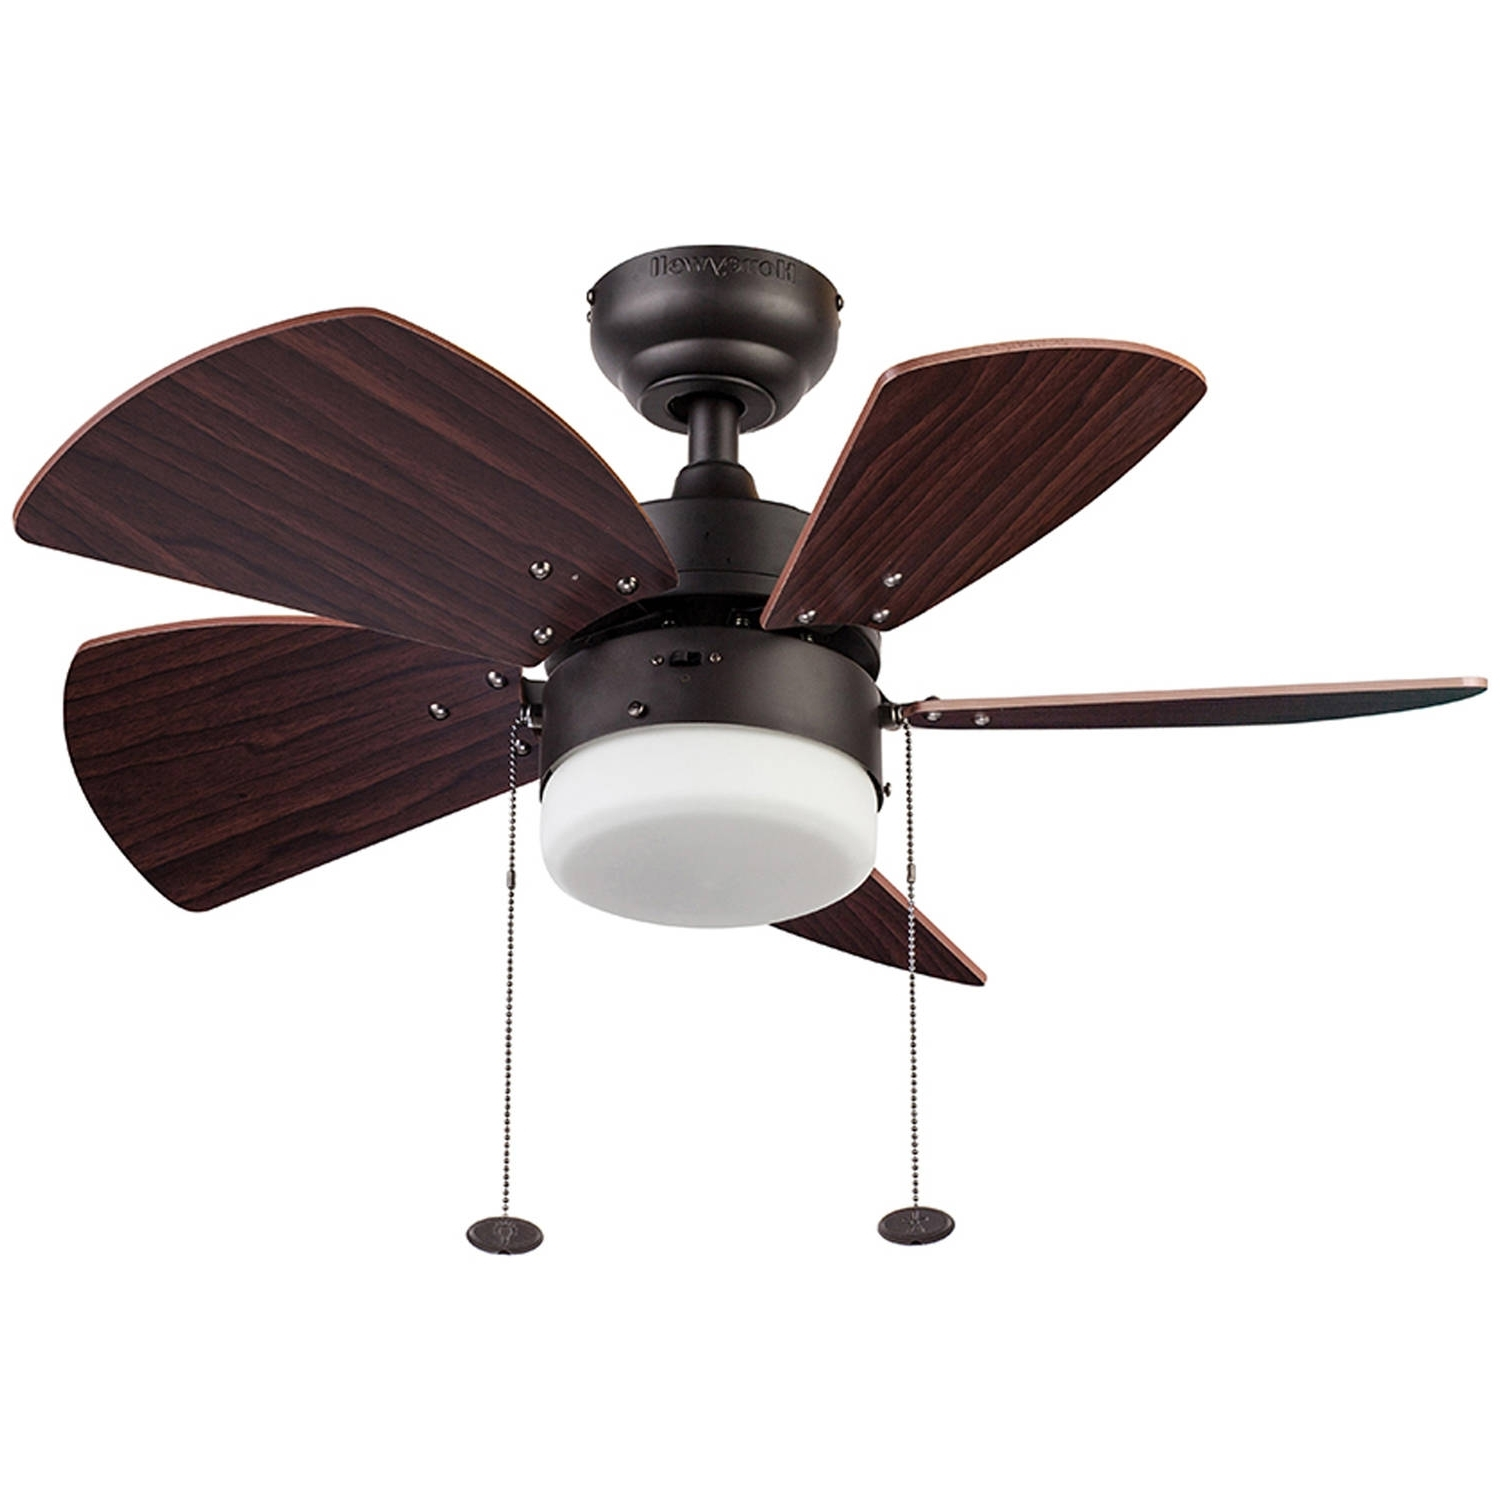 Outdoor Ceiling Fans At Walmart Pertaining To Recent 30Quot; Honeywell Lenox Ceiling Fan, Bronze Walmartcom, Ceiling Fans (View 13 of 20)